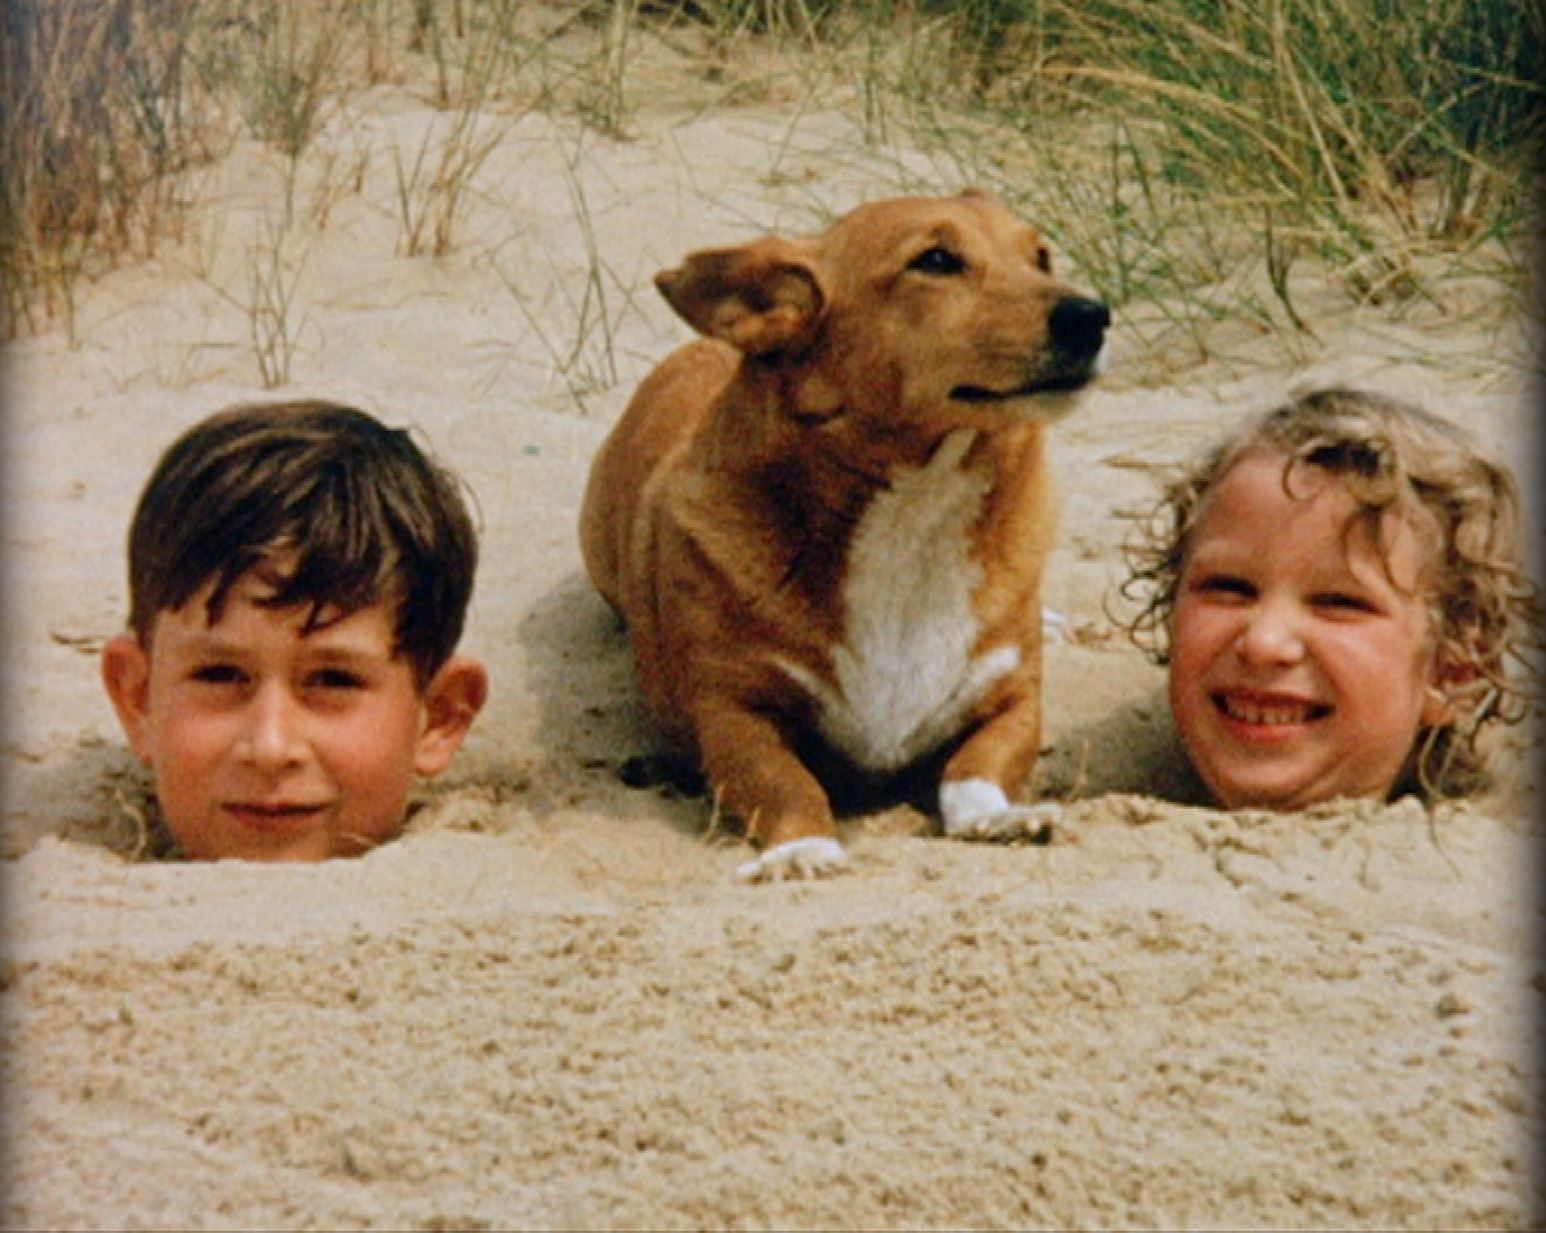 1957:  Prince Charles and Princess Anne buried in sand